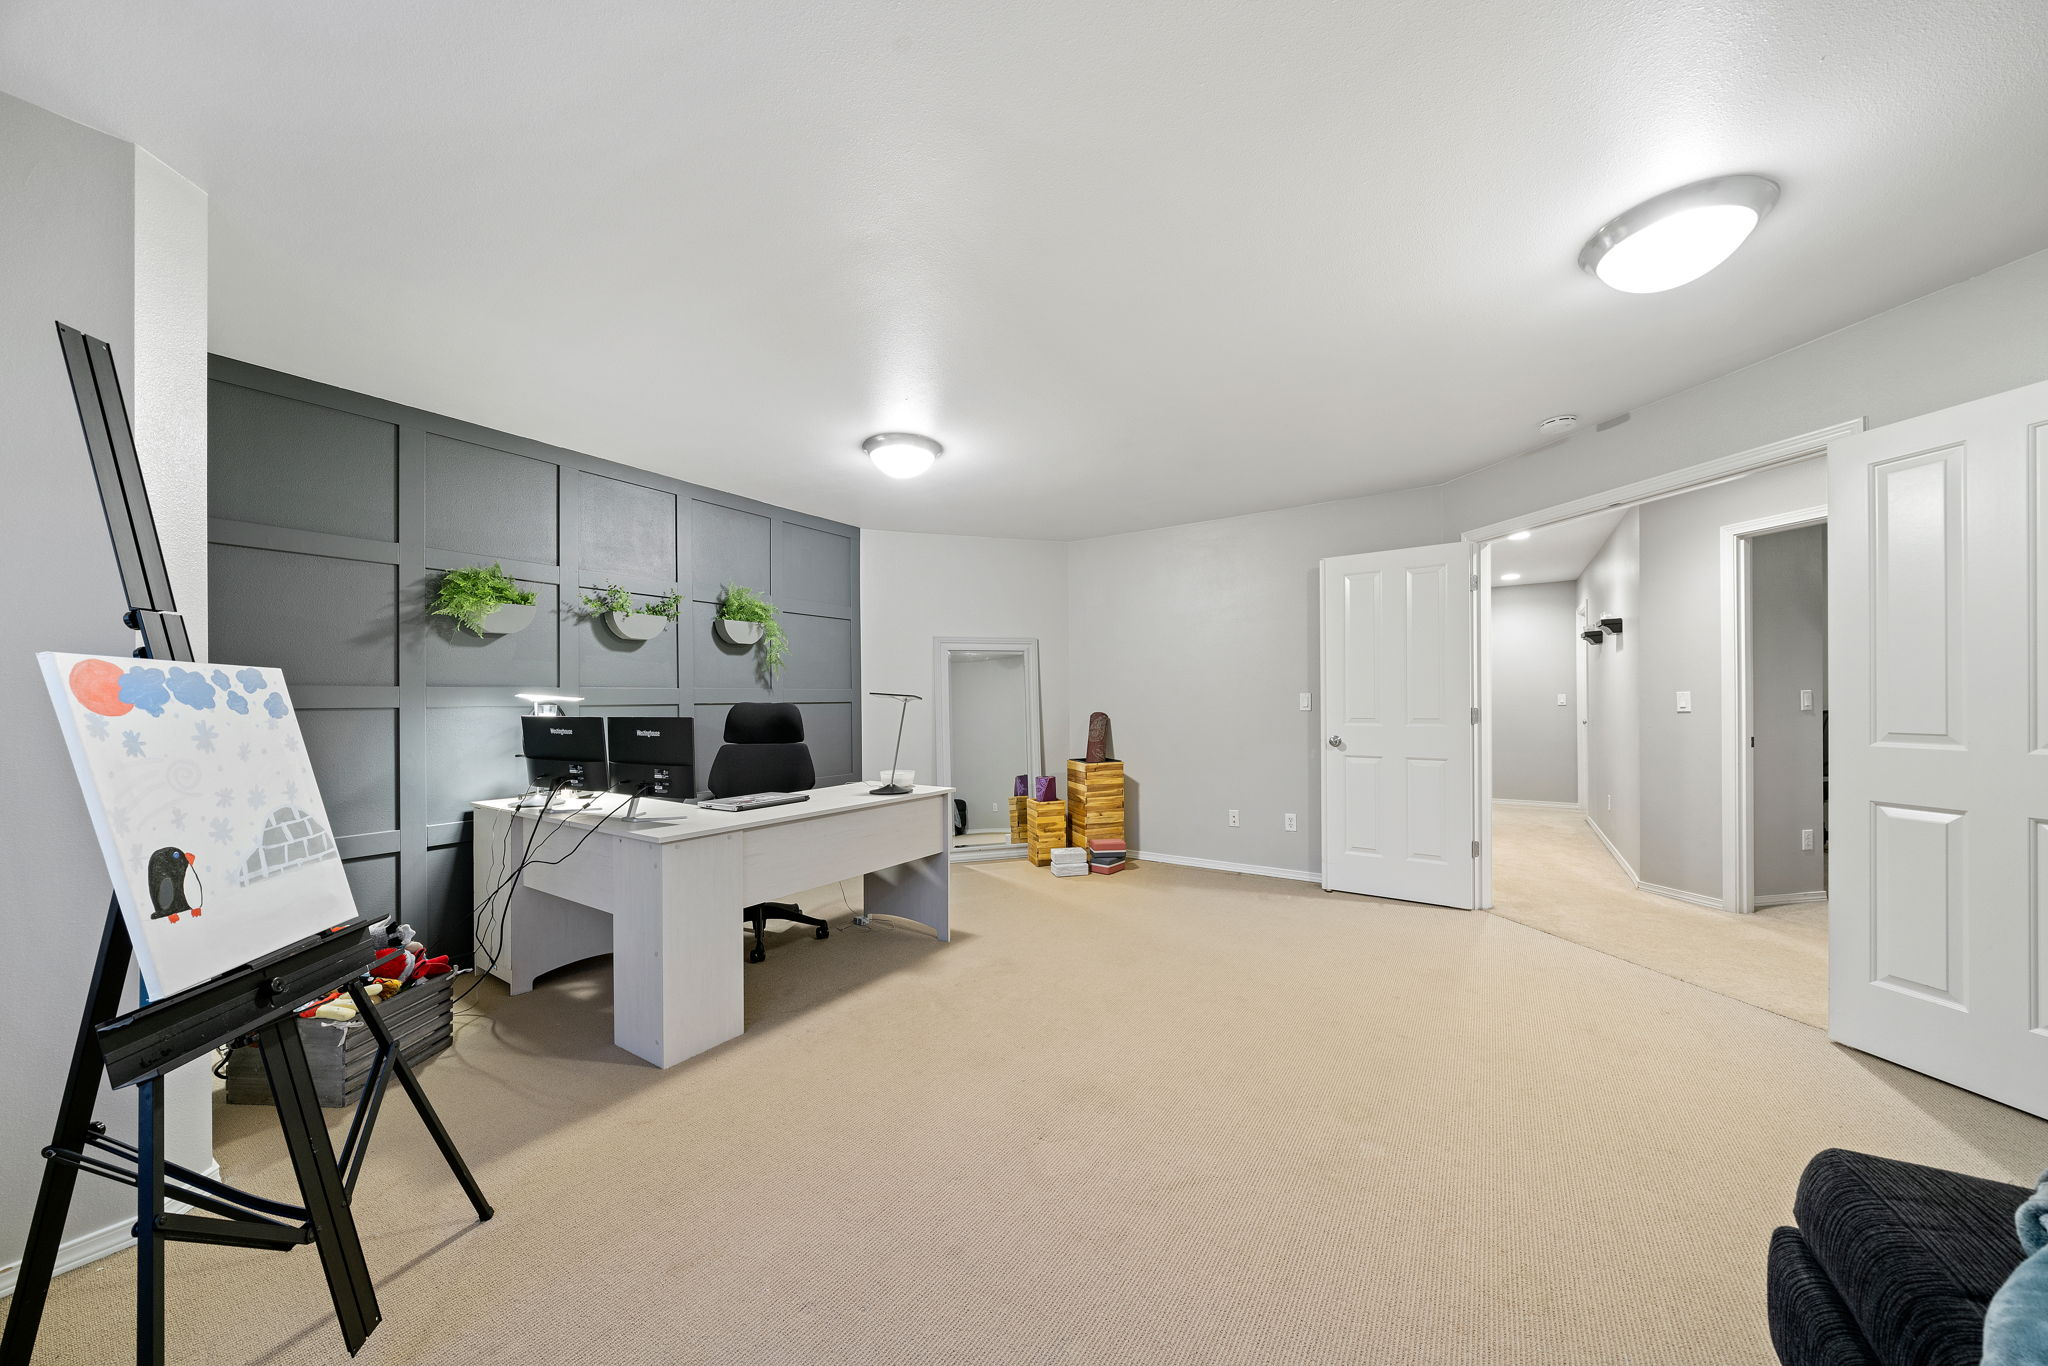 Upstairs has a very large open bonus/flex space. Great space for a movie theater room, kids play room, additional office or even designated area for online learning! You choose!